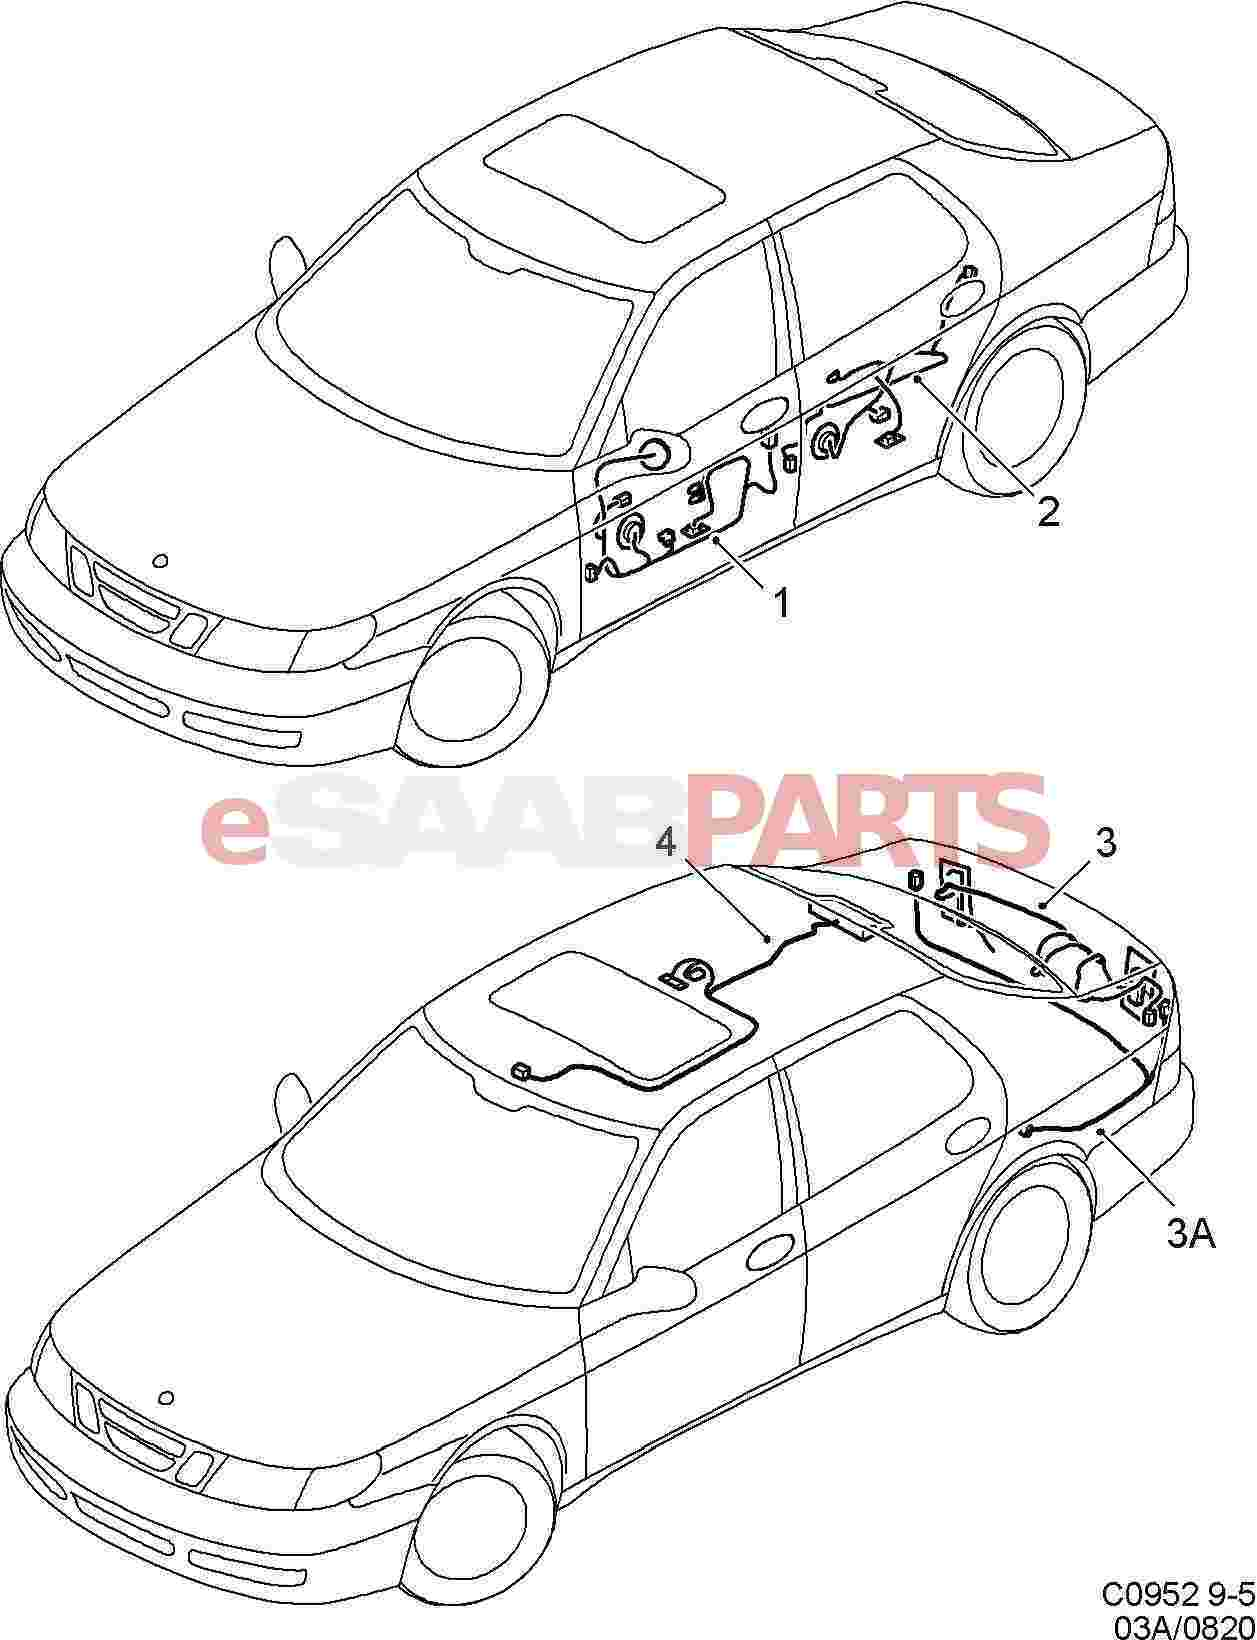 Esaabparts saab 9 5 9600 > electrical parts > wiring harness > doors roof and rear hatch